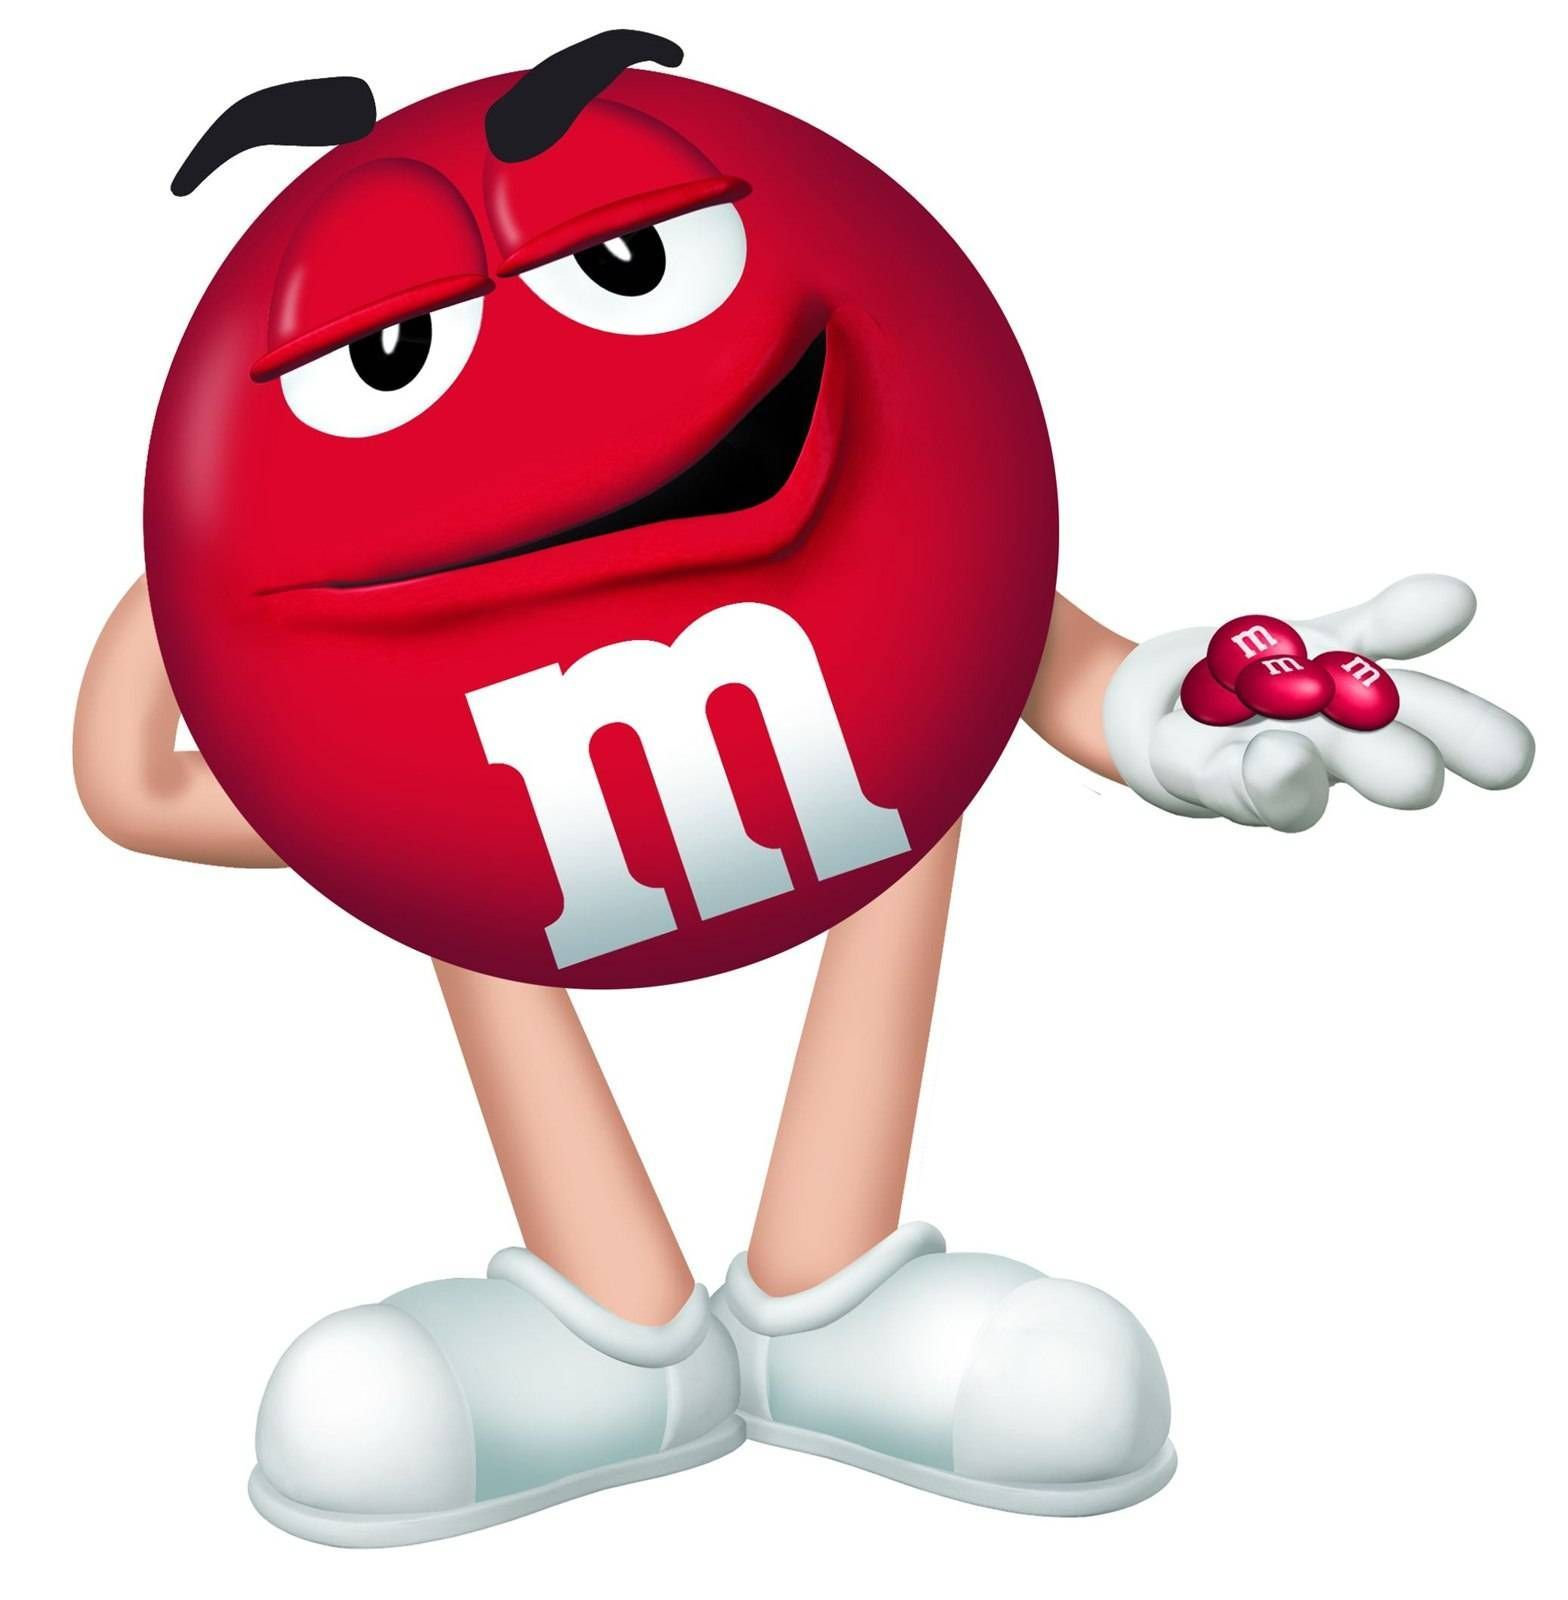 M & m characters clipart graphic library Image result for m and m chocolate red smile | Disney in 2019 ... graphic library